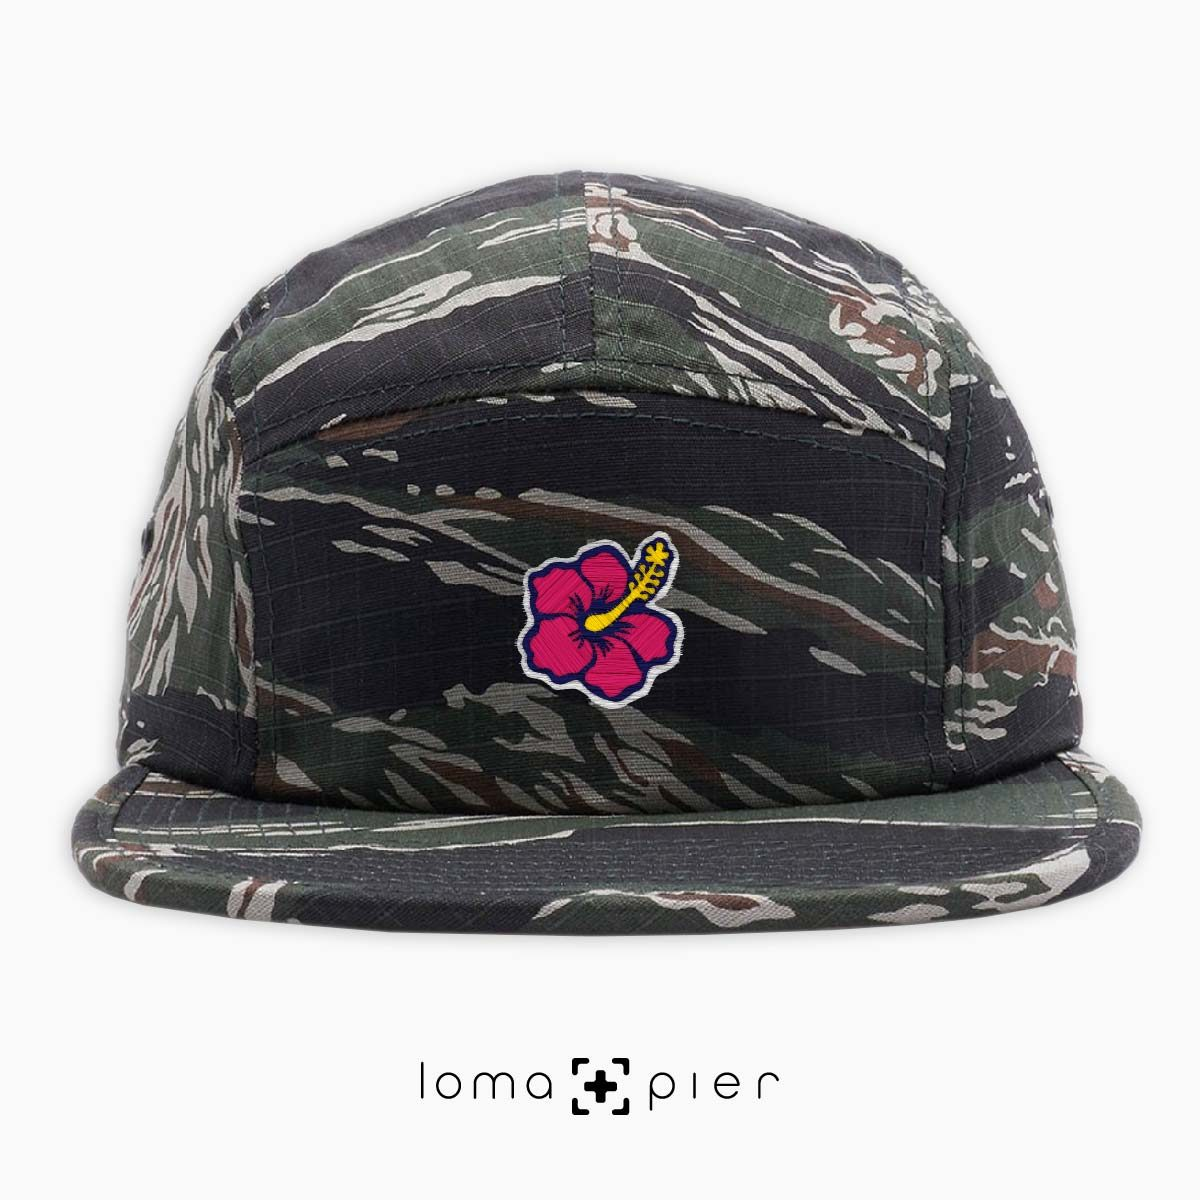 hibiscus hawaiian flower icon 5-panel hat in camo by loma+pier hat store